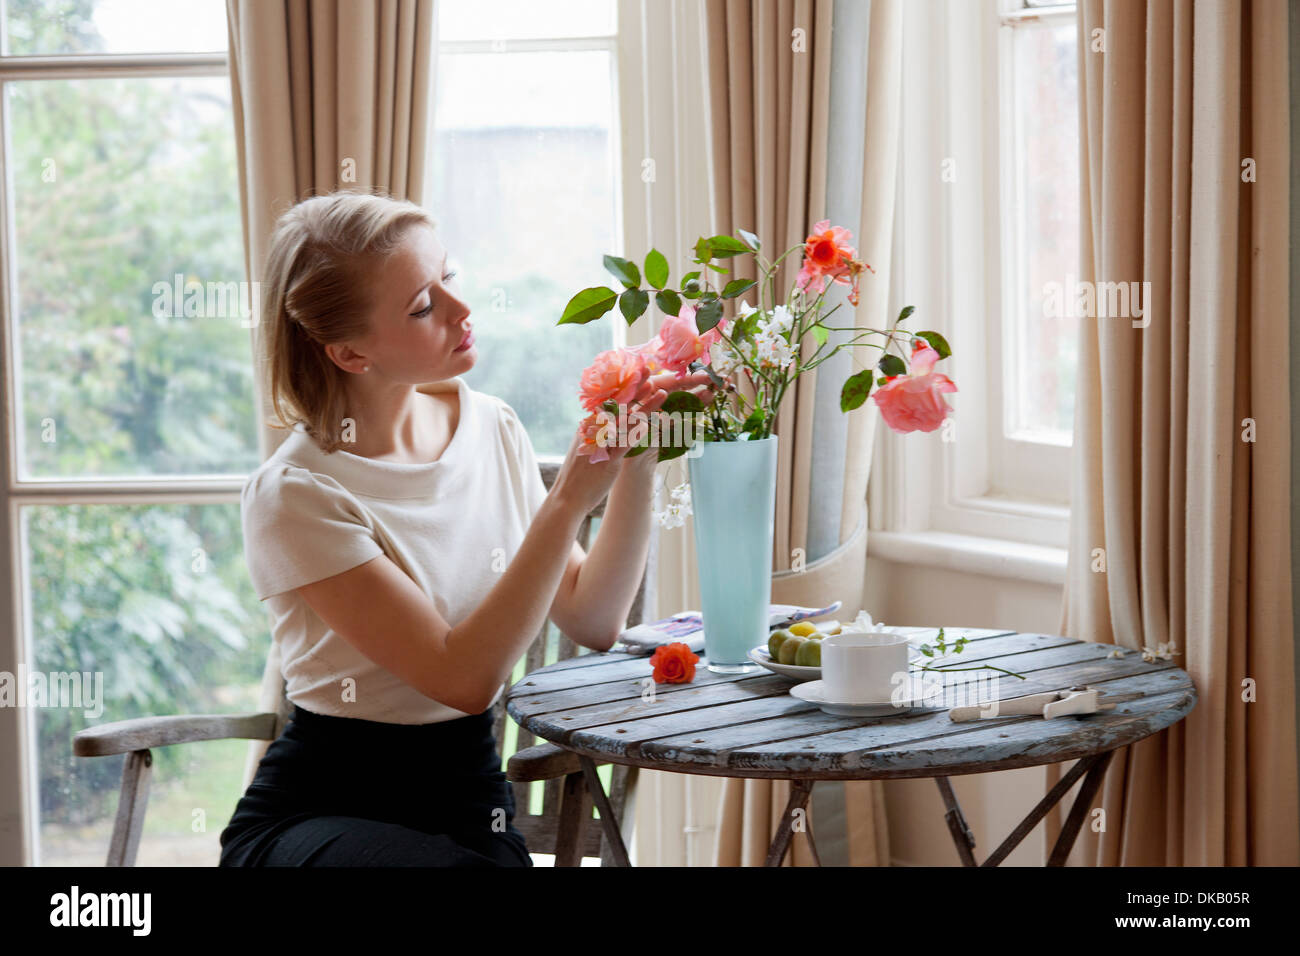 Woman arranging roses in vase stock photo 63551203 alamy woman arranging roses in vase reviewsmspy